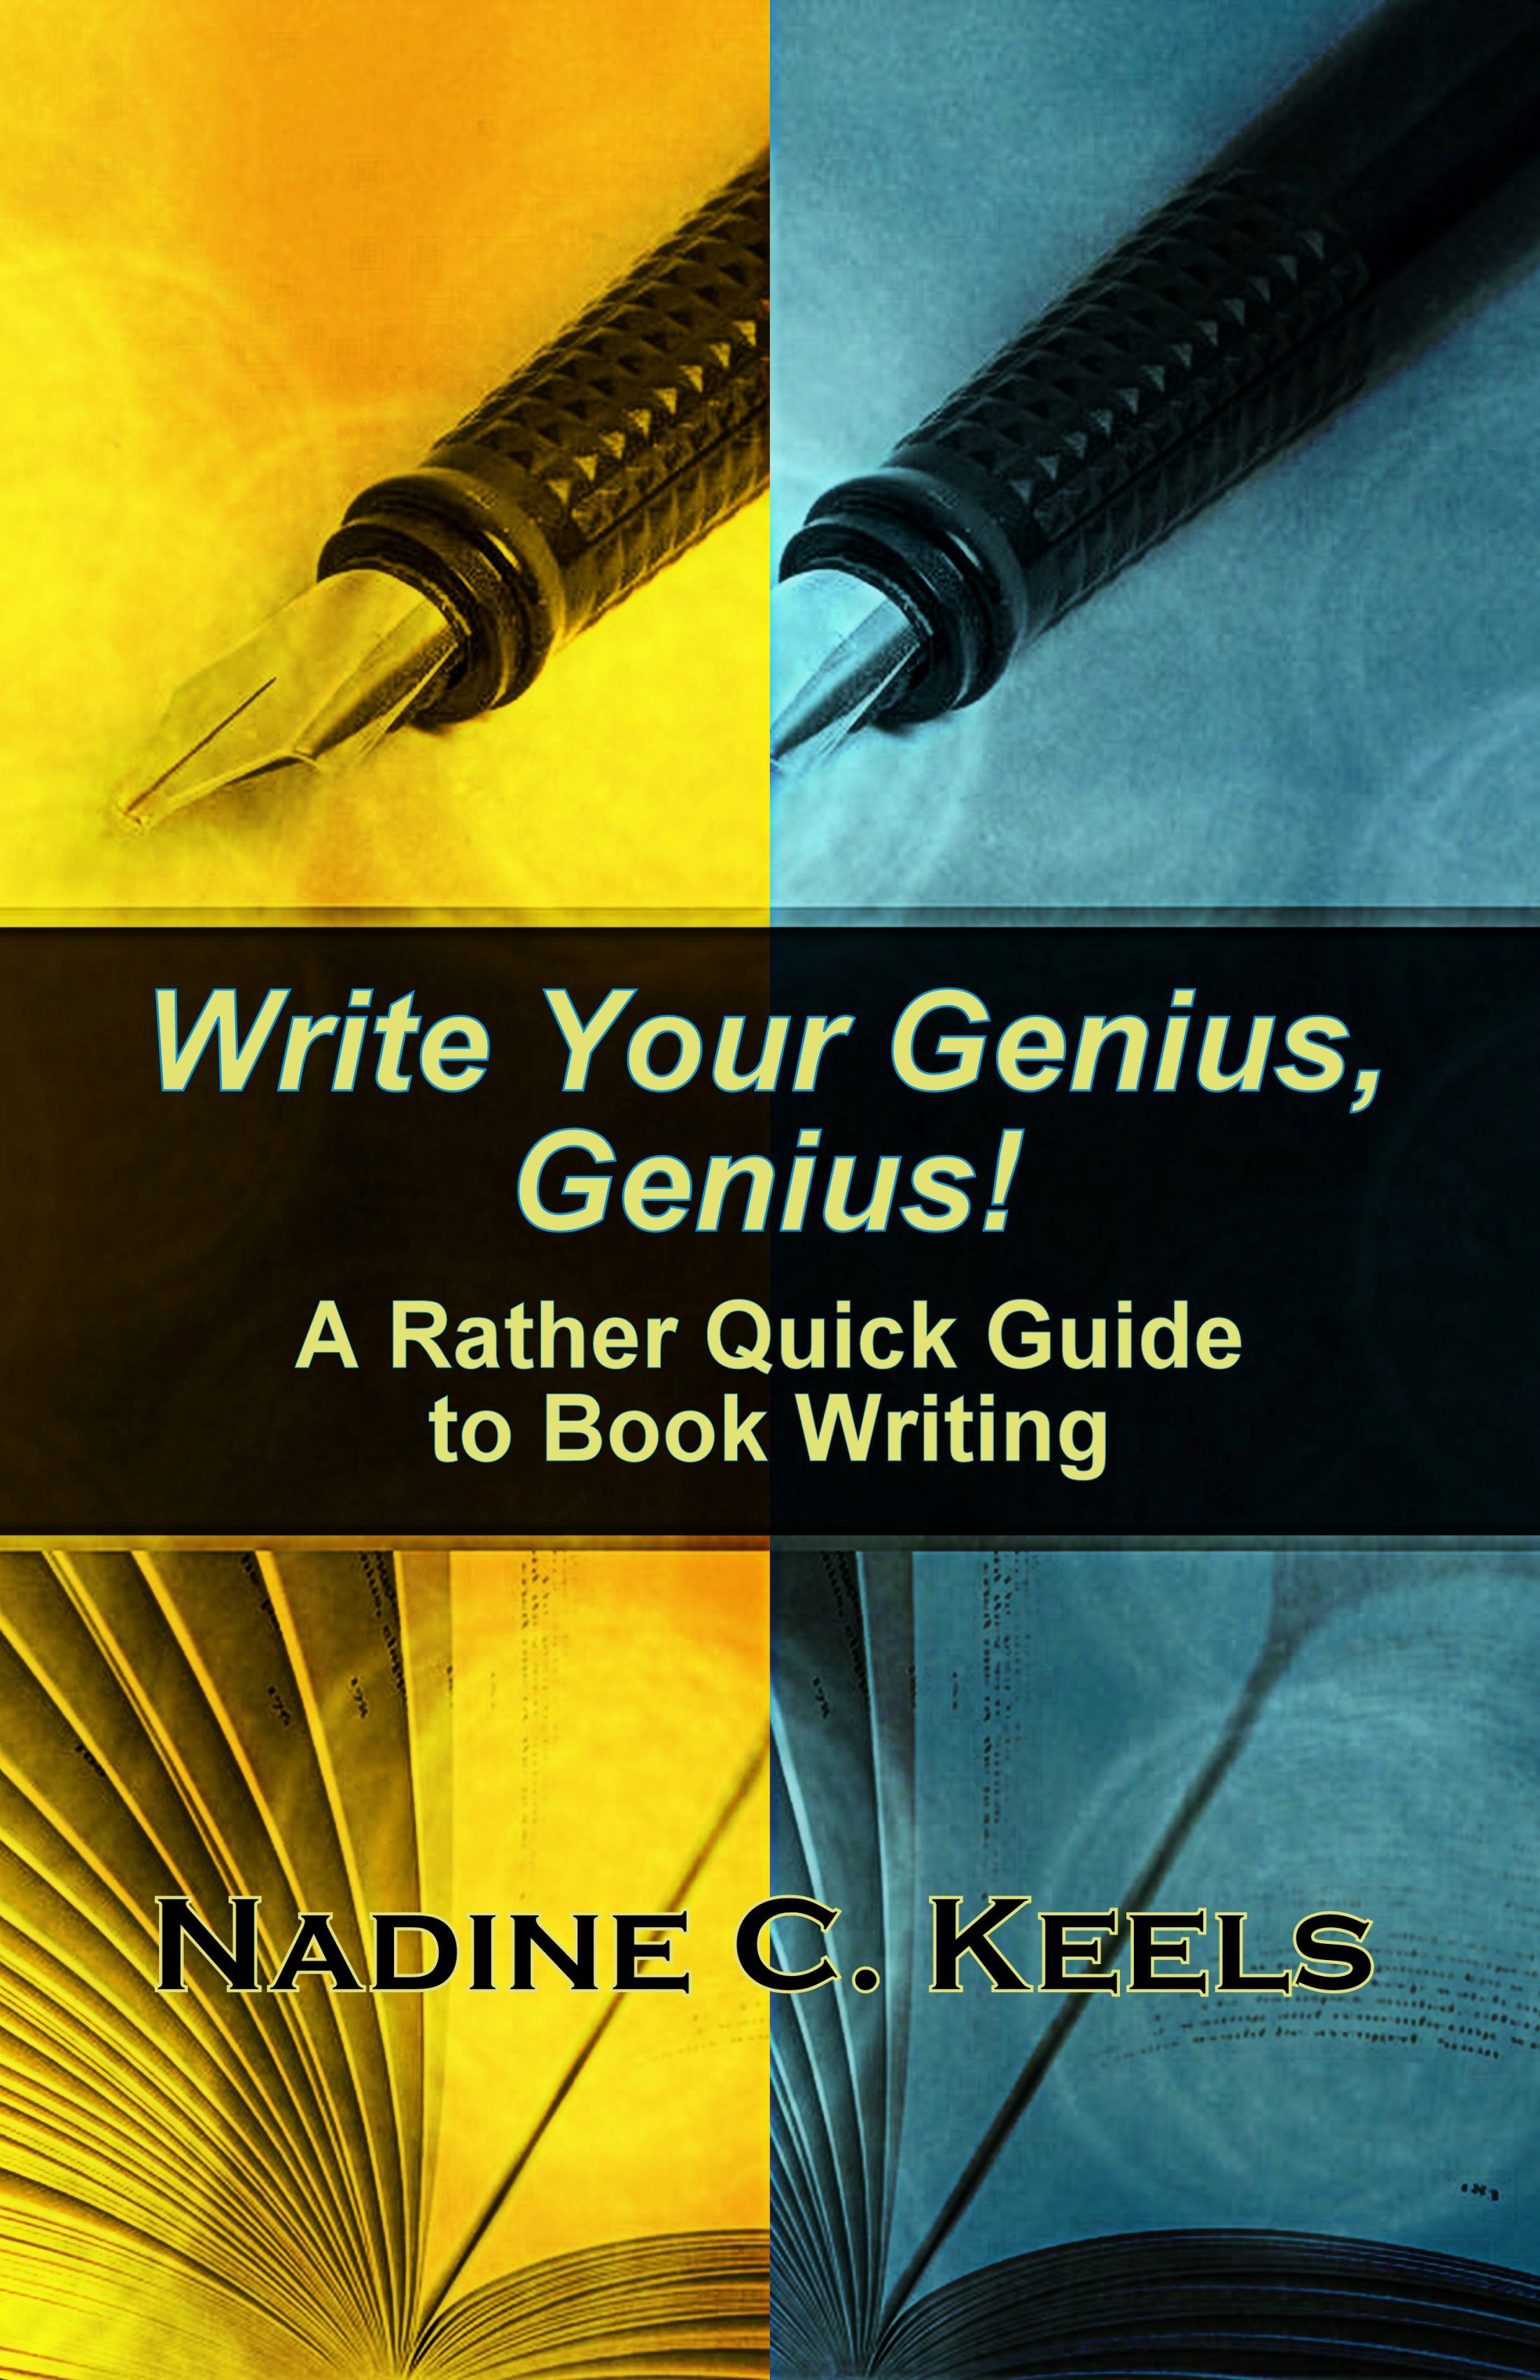 Write Your Genius, Genius! A Rather Quick Guide to Book Writing